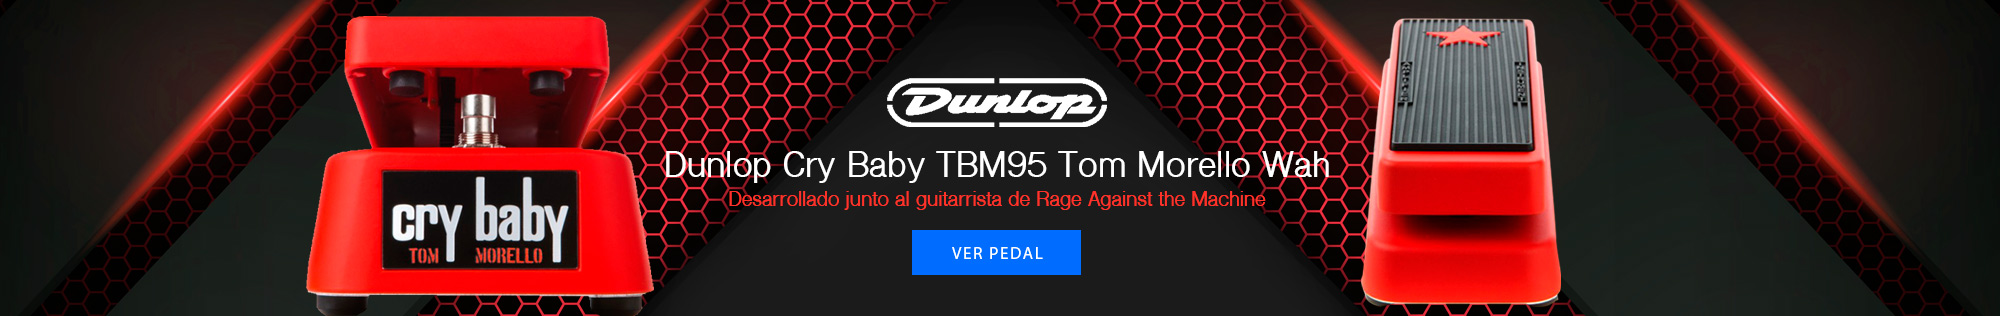 Dunlop Cry Baby TBM95